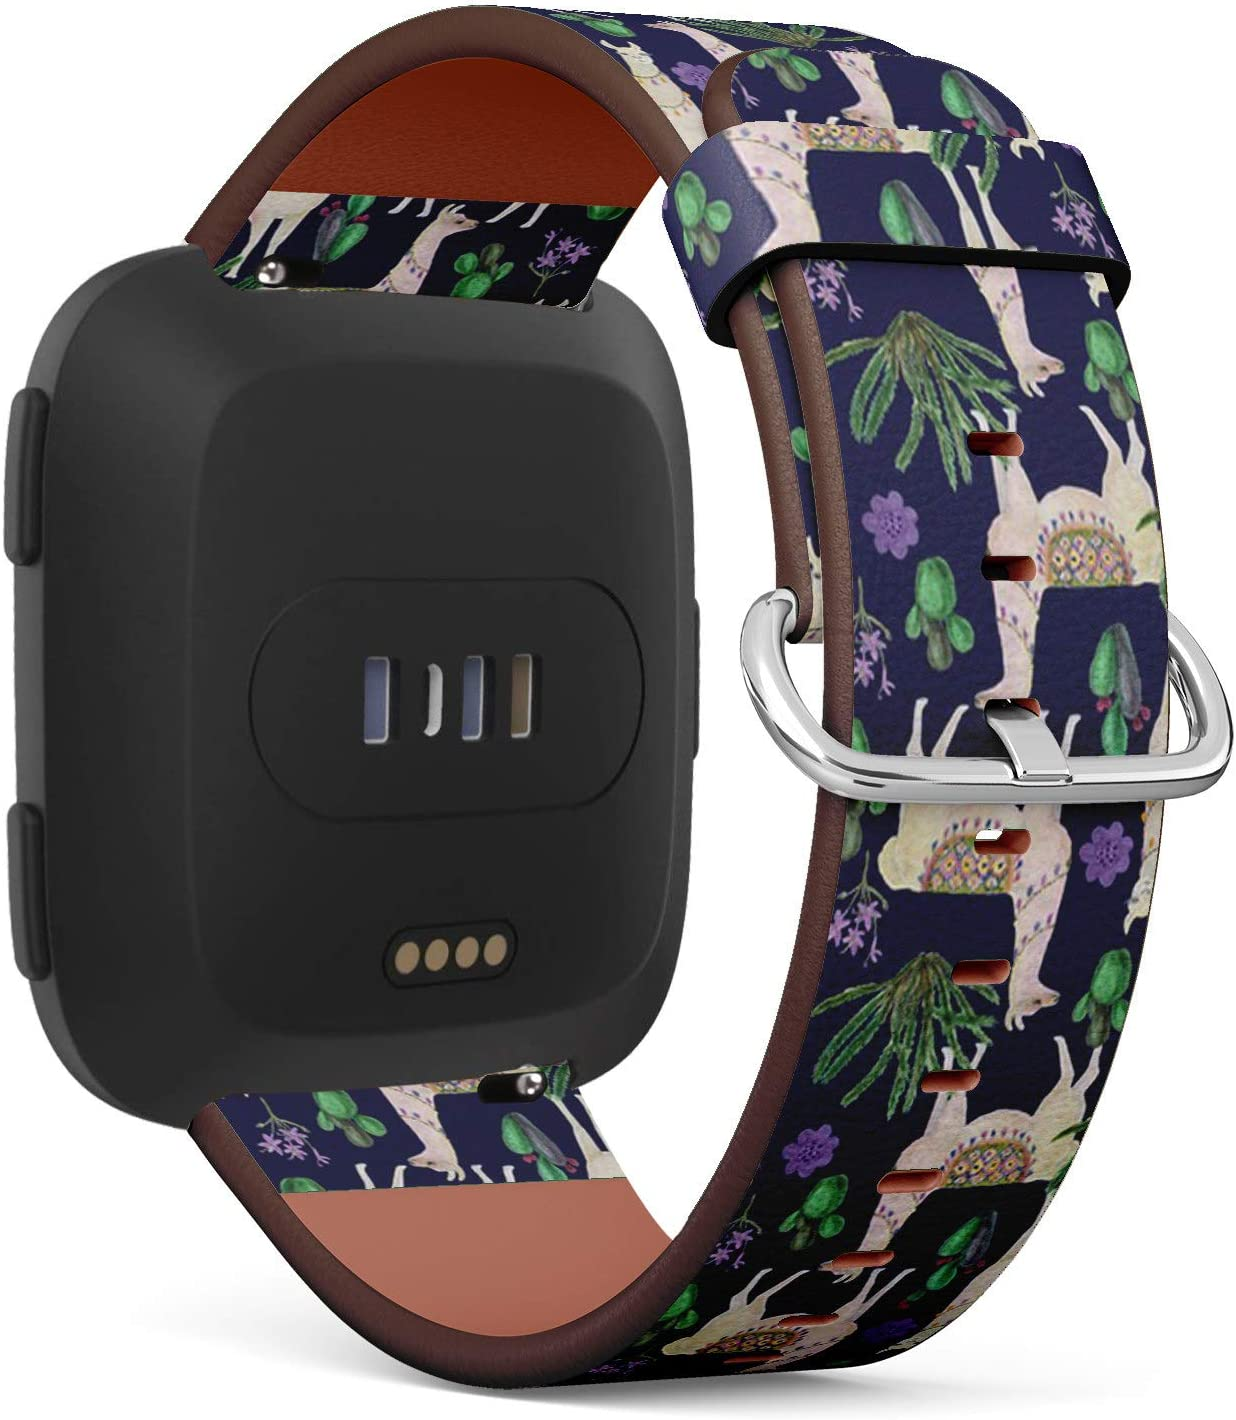 Compatible with Fitbit Versa, Versa 2, Versa Lite - Quick Release Leather Wristband Bracelet Replacement Accessory Band - Watercoloring Llamas